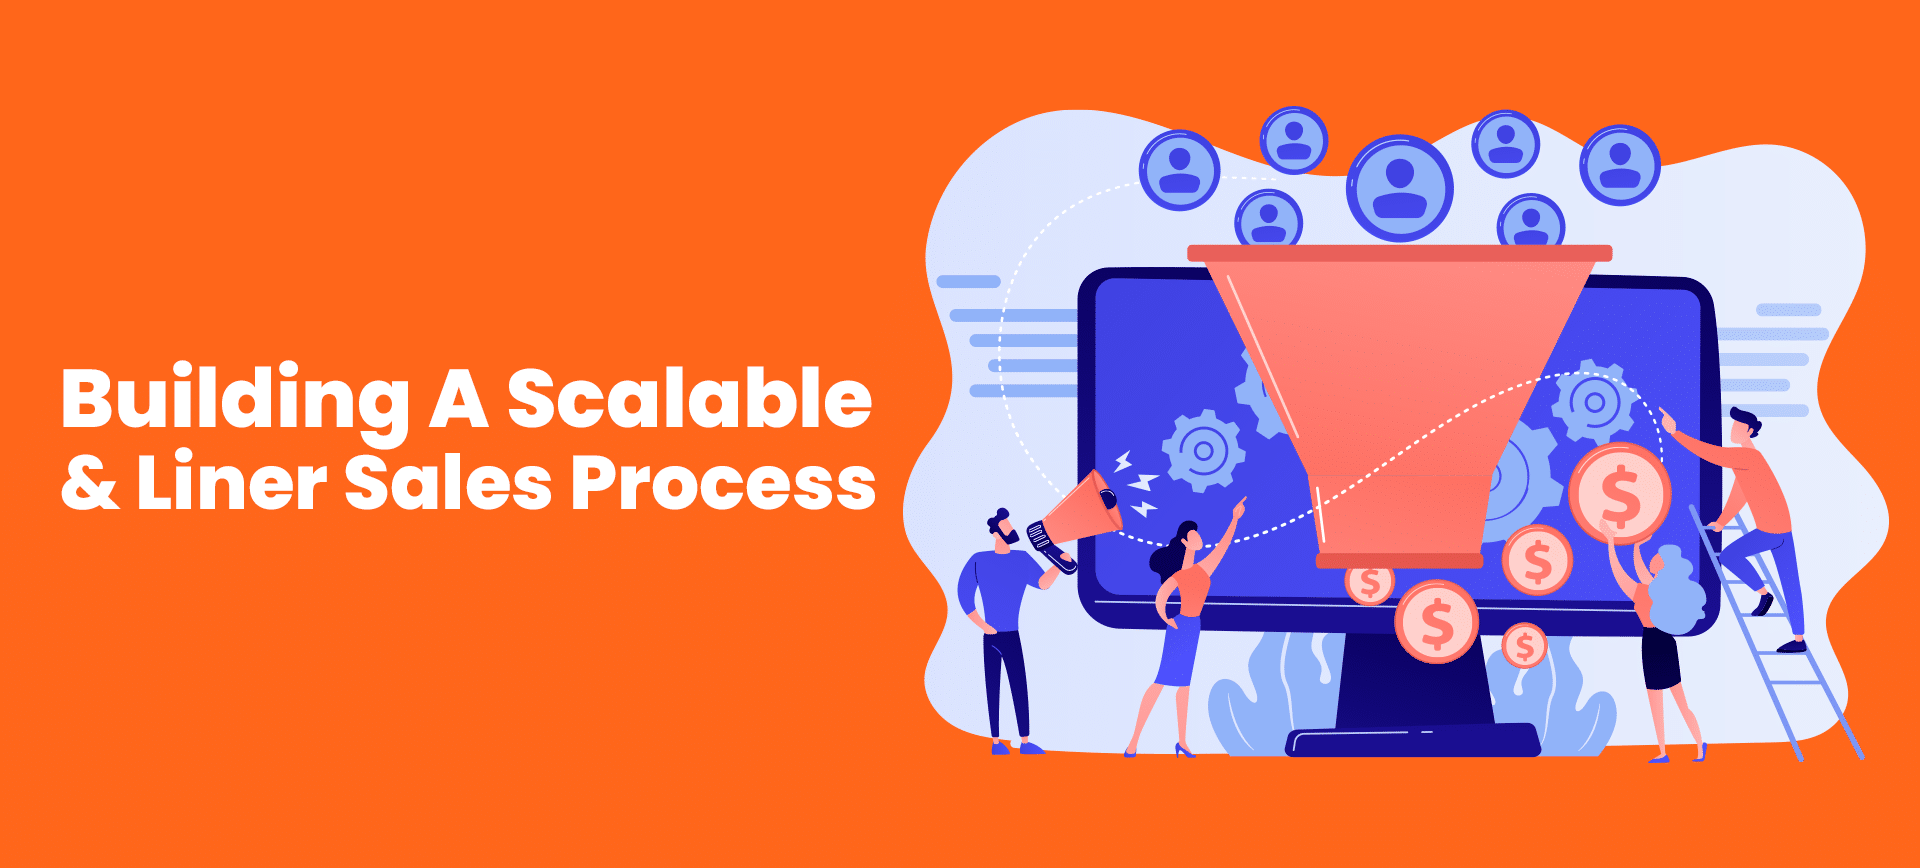 Building A Scalable & Linear Sales Process